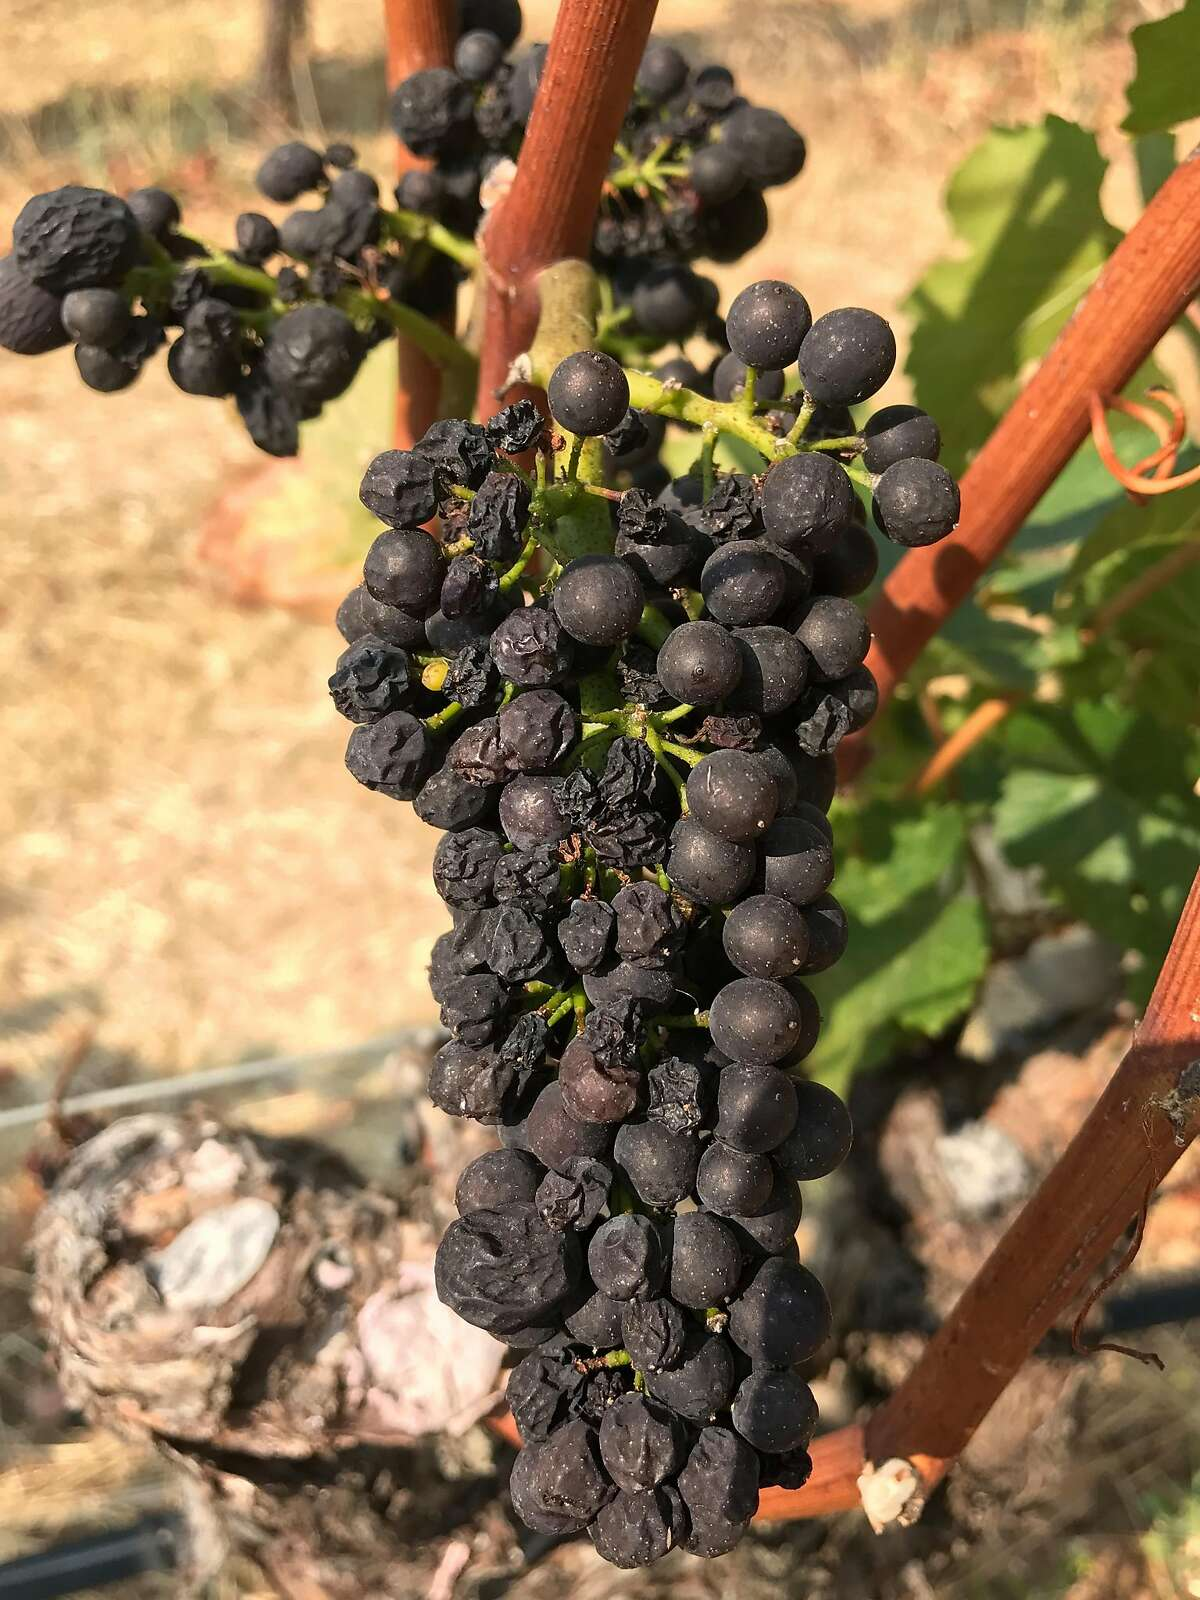 Wine grapes that shriveled from the heat at Hirsch Vineyards.